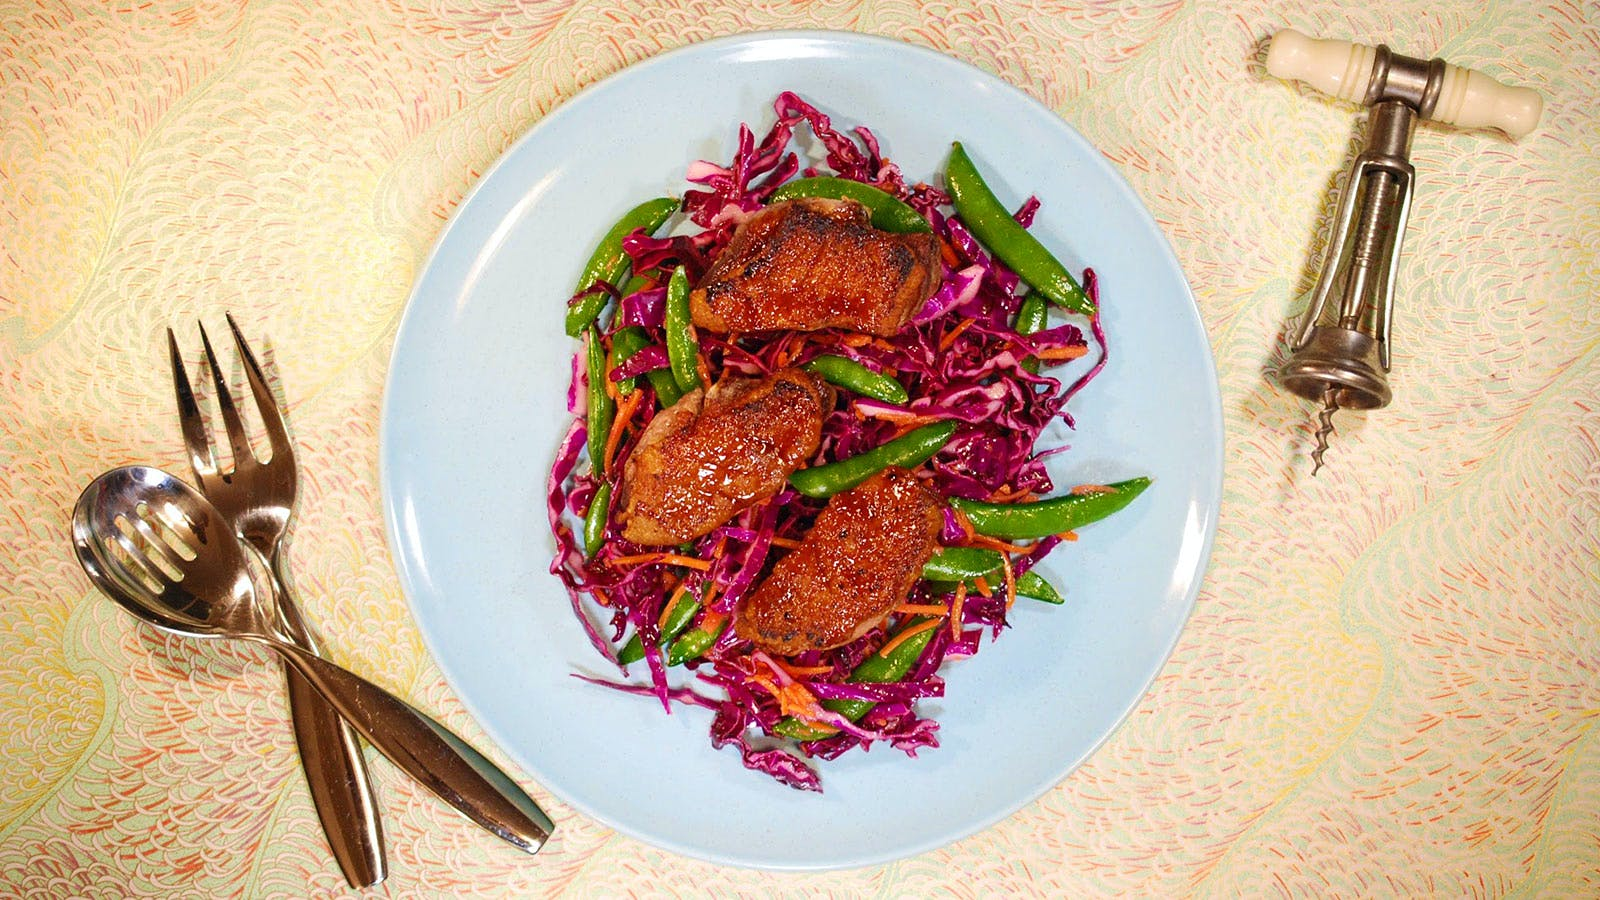 8 & $20: Plum-Soy Duck Breast with Asian Slaw